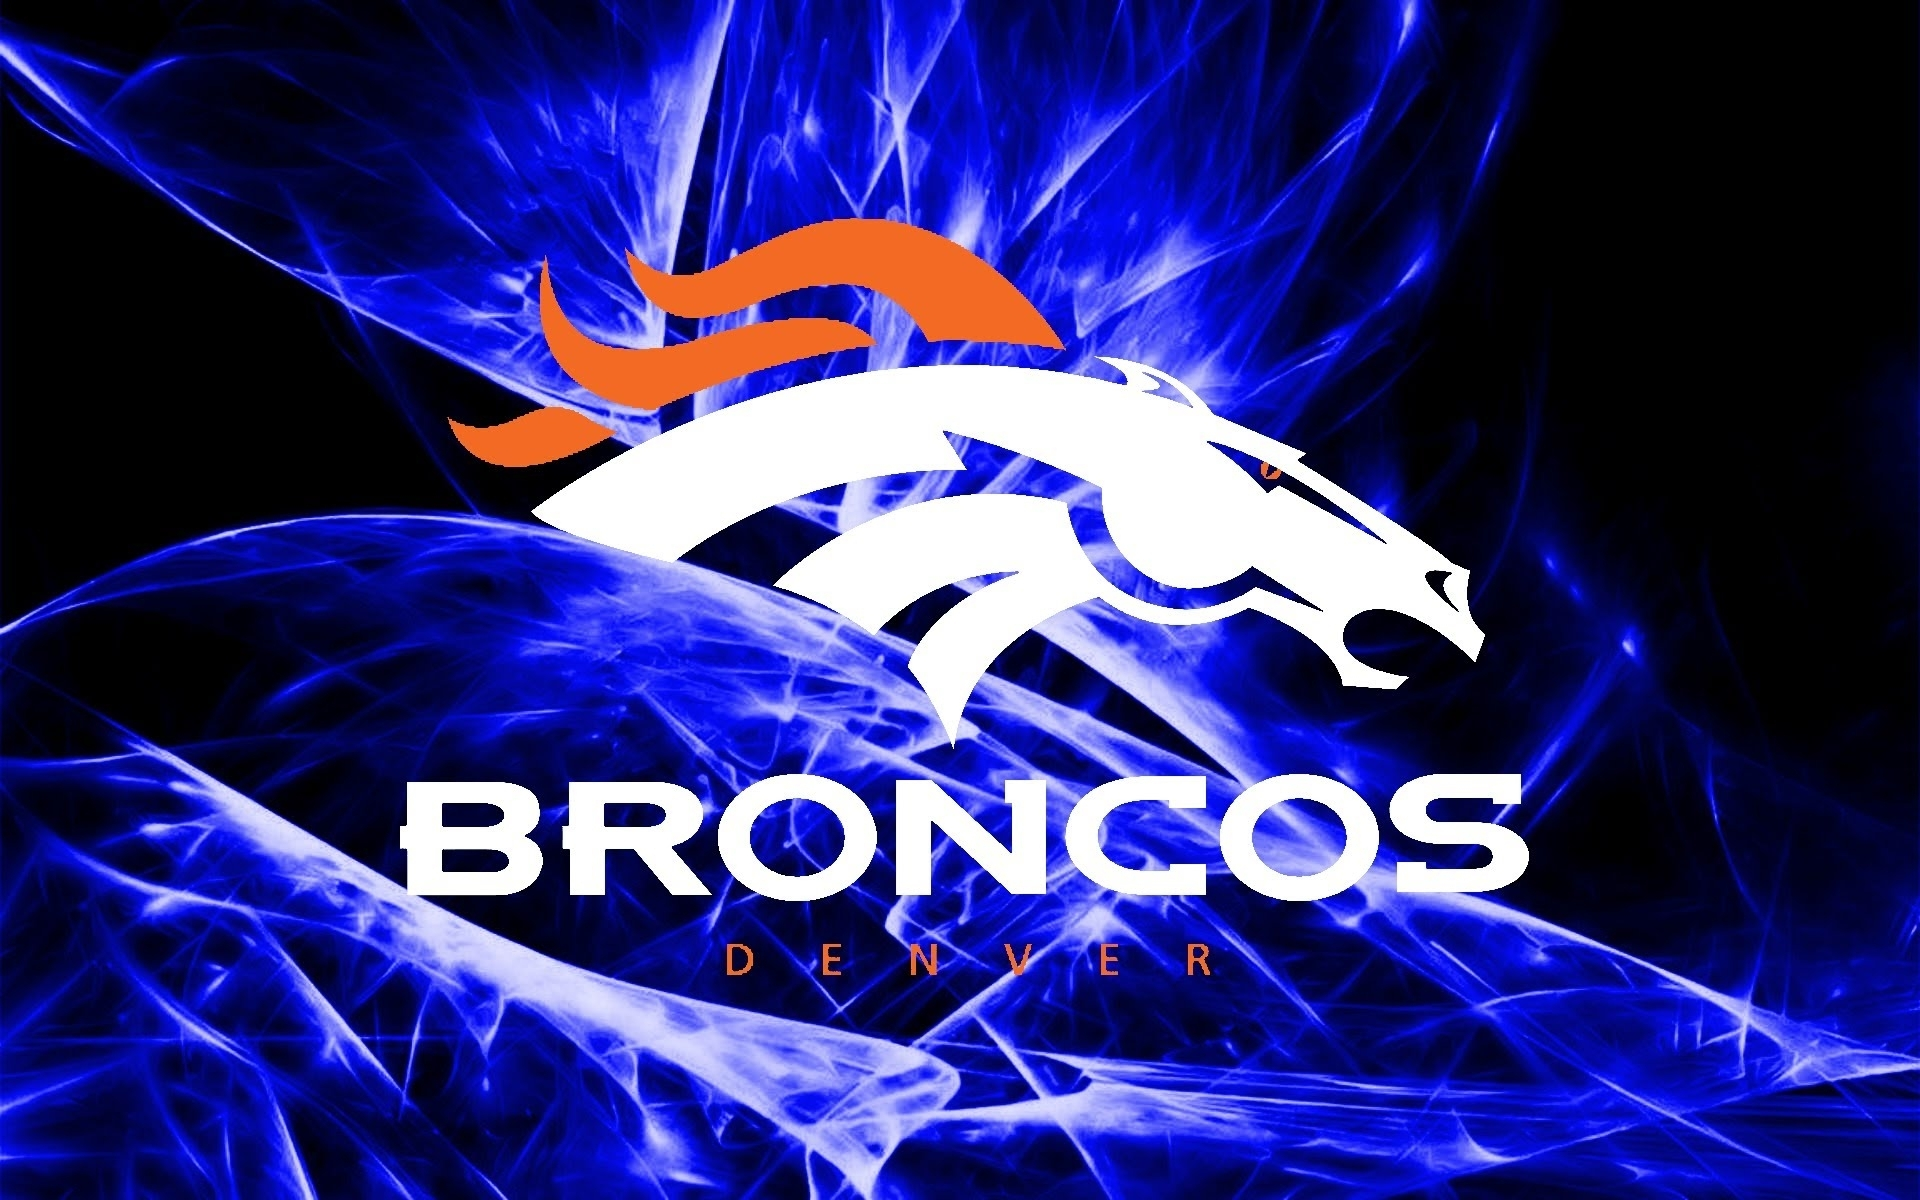 denver broncos wallpaper hd #6985953